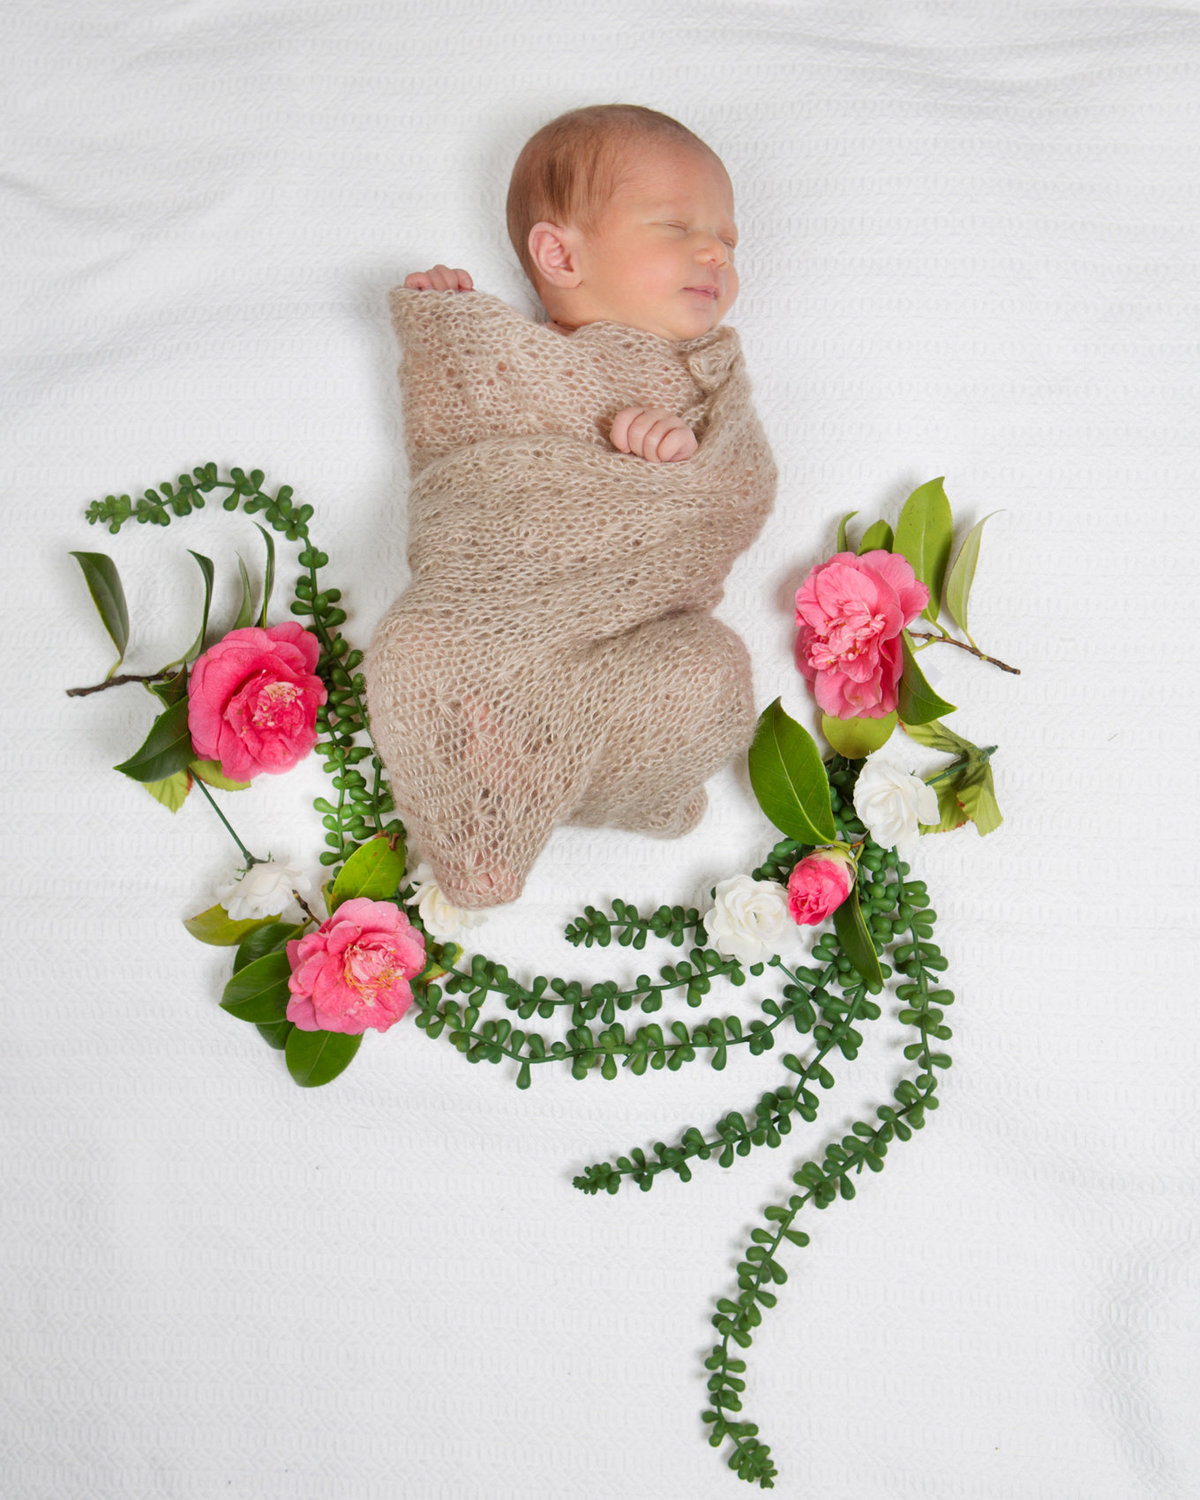 Baby Blanket Greenery Photoshoot Portrait